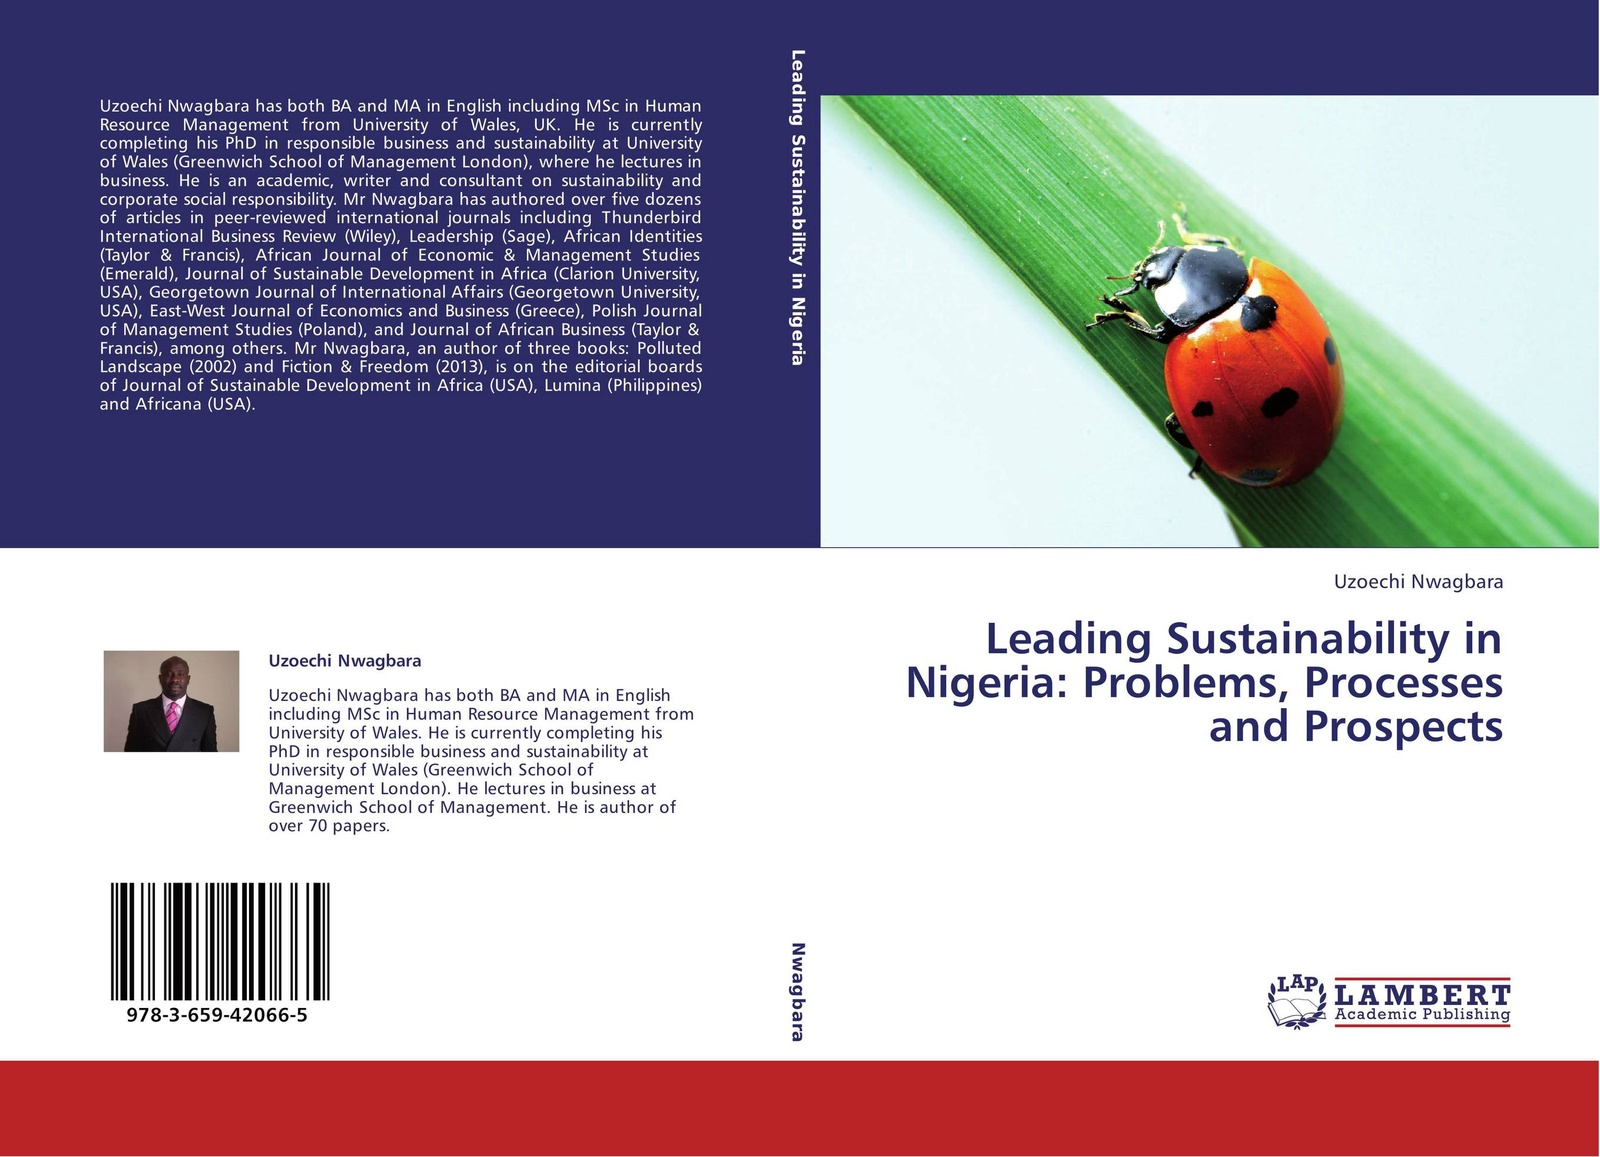 Uzoechi Nwagbara Leading Sustainability in Nigeria: Problems, Processes and Prospects